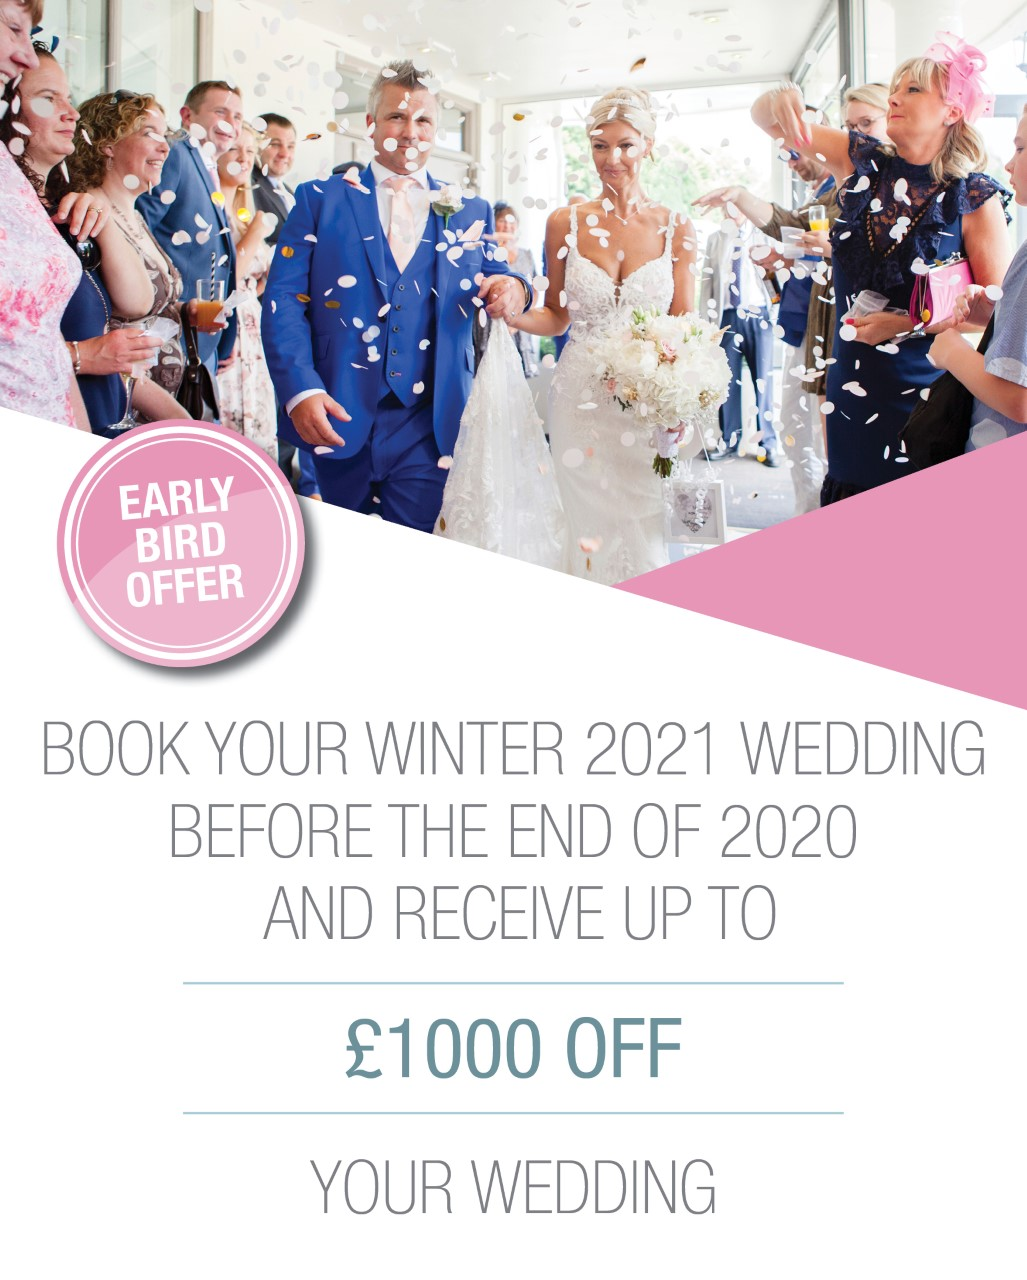 Early Bird Winter Wedding Offer at Southdowns Manor